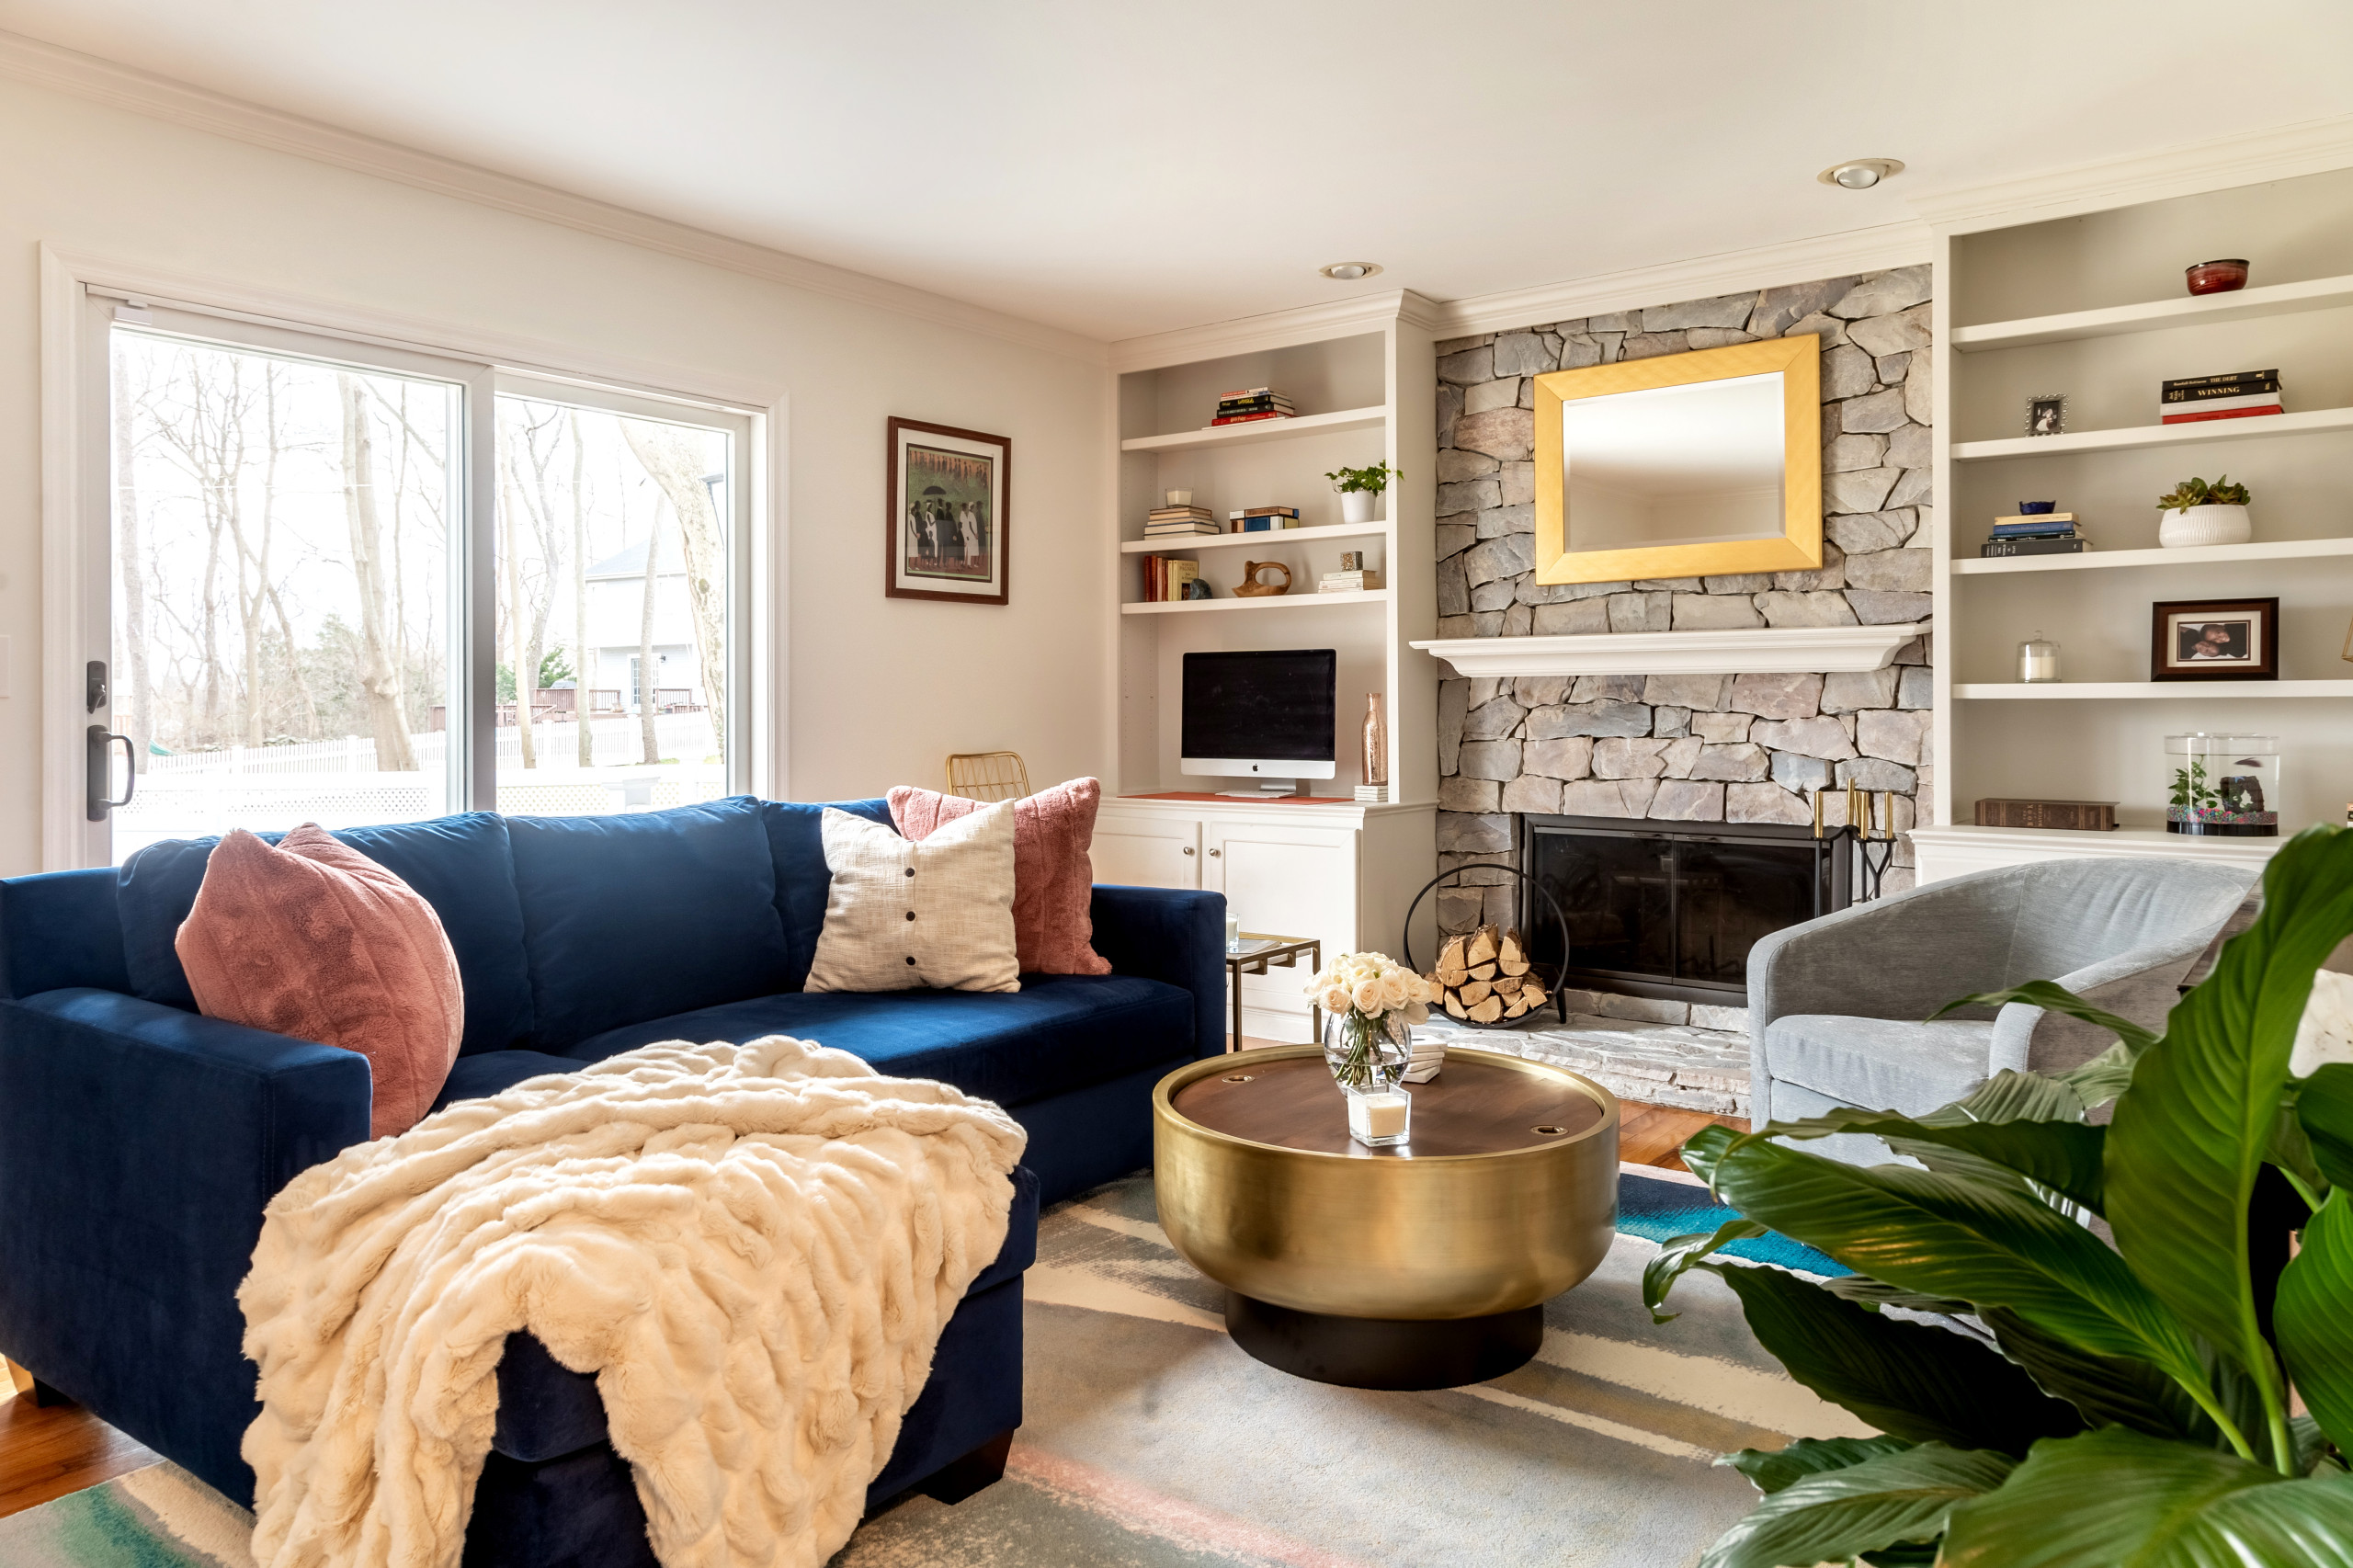 75 Beautiful Family Room Pictures Ideas May 2021 Houzz